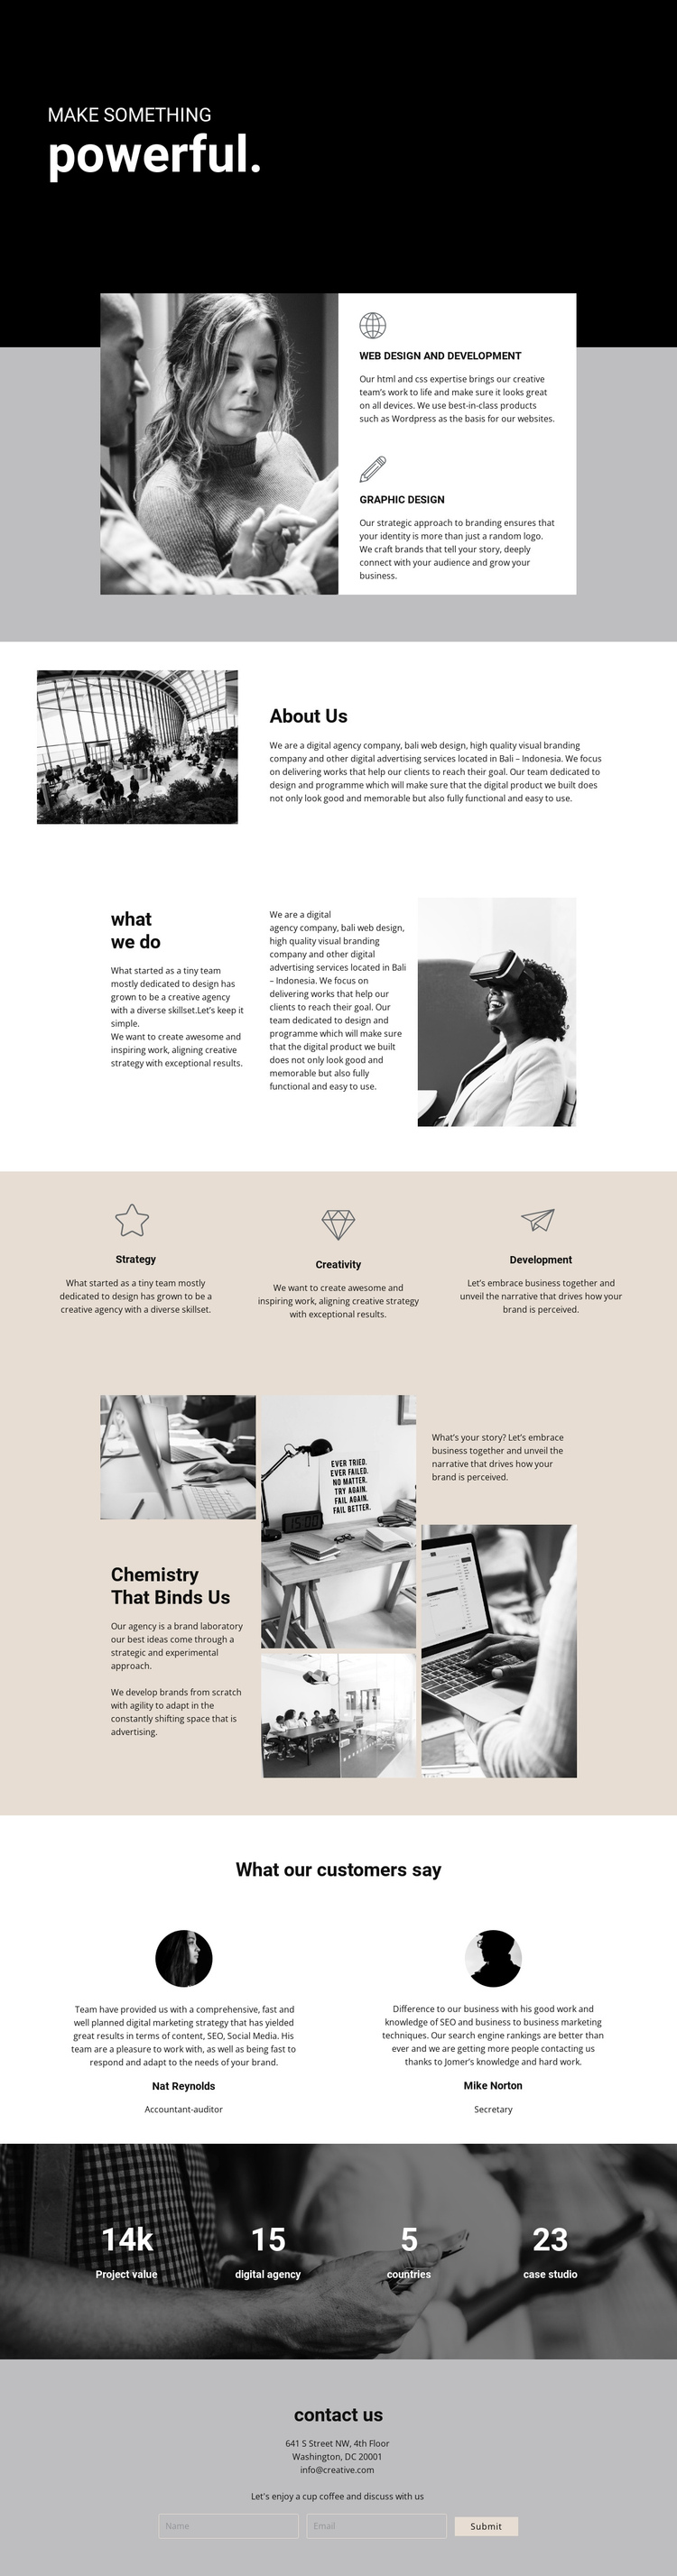 Power of digital business One Page Template